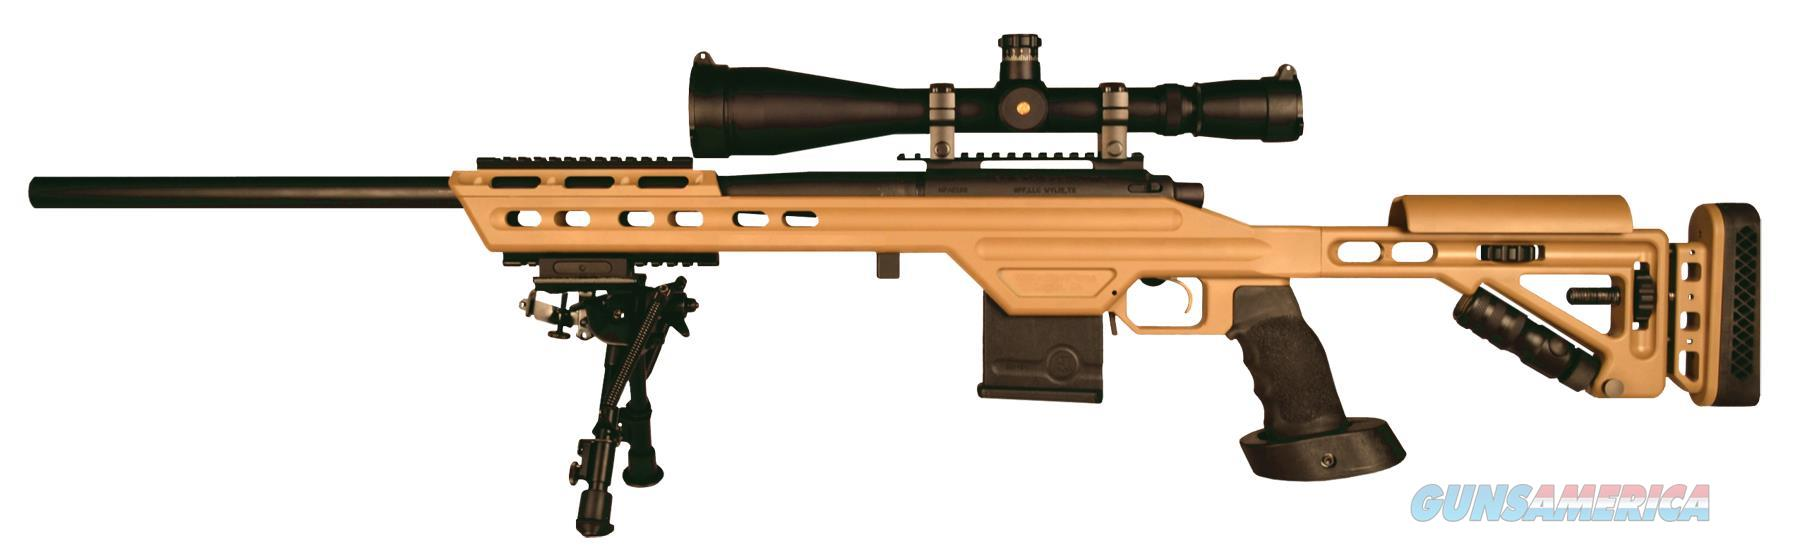 "Masterpiece Arms 308Batan Bolt Action 308 Win/7.62 Nato 24"" 10+1 Mpa Tactical Chassis Aluminum Tan Stk Tan Cerakote 308BATAN  Guns > Rifles > MN Misc Rifles"